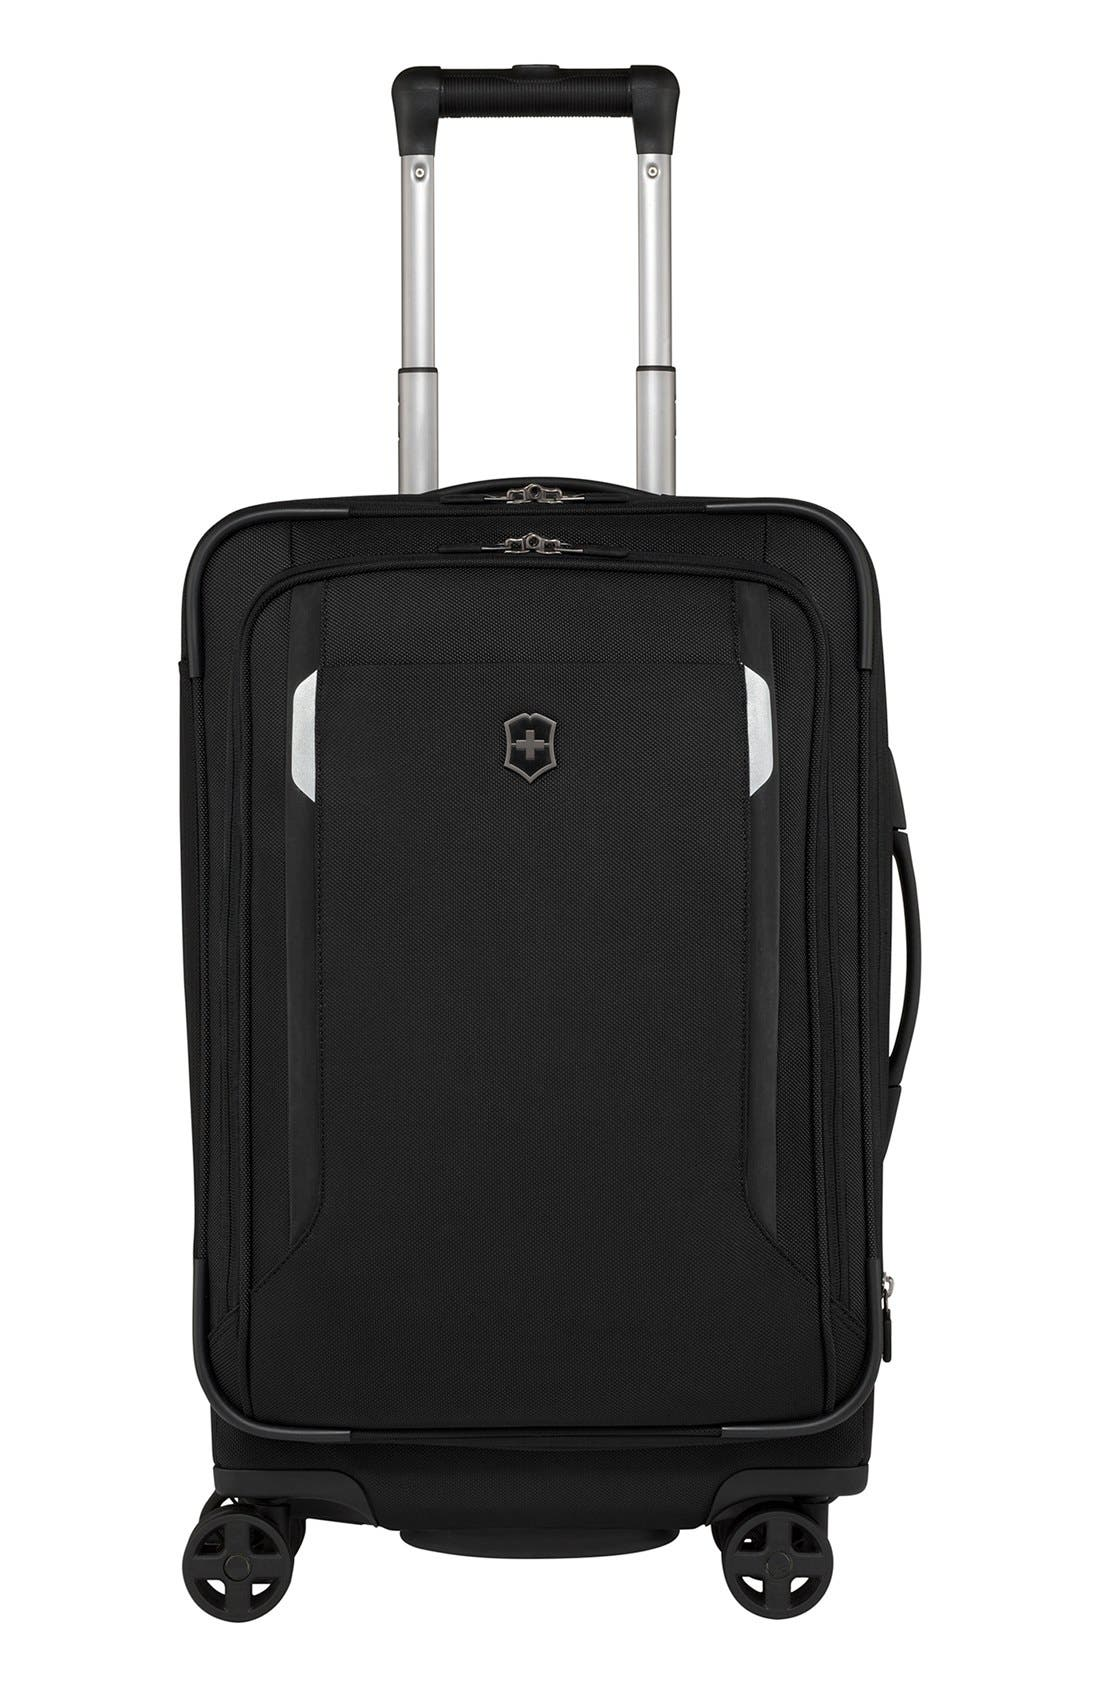 WT 5.0 Dual Caster Wheeled 22-Inch Carry-On,                         Main,                         color, Black